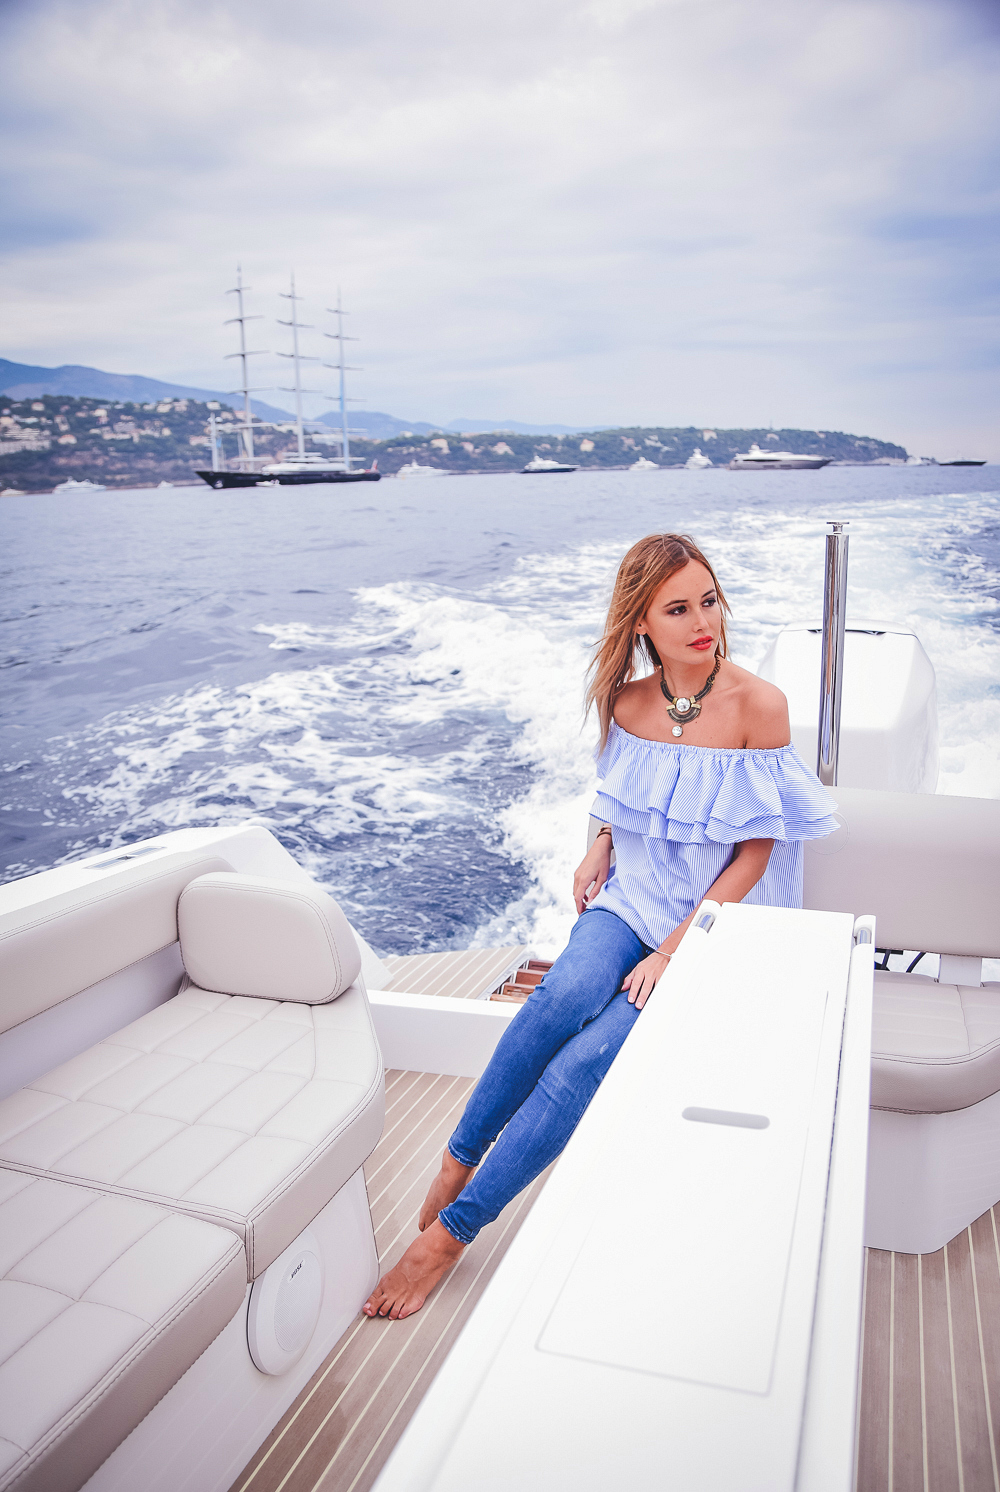 back at monaco yacht show | the mandarine girl | bloglovin'